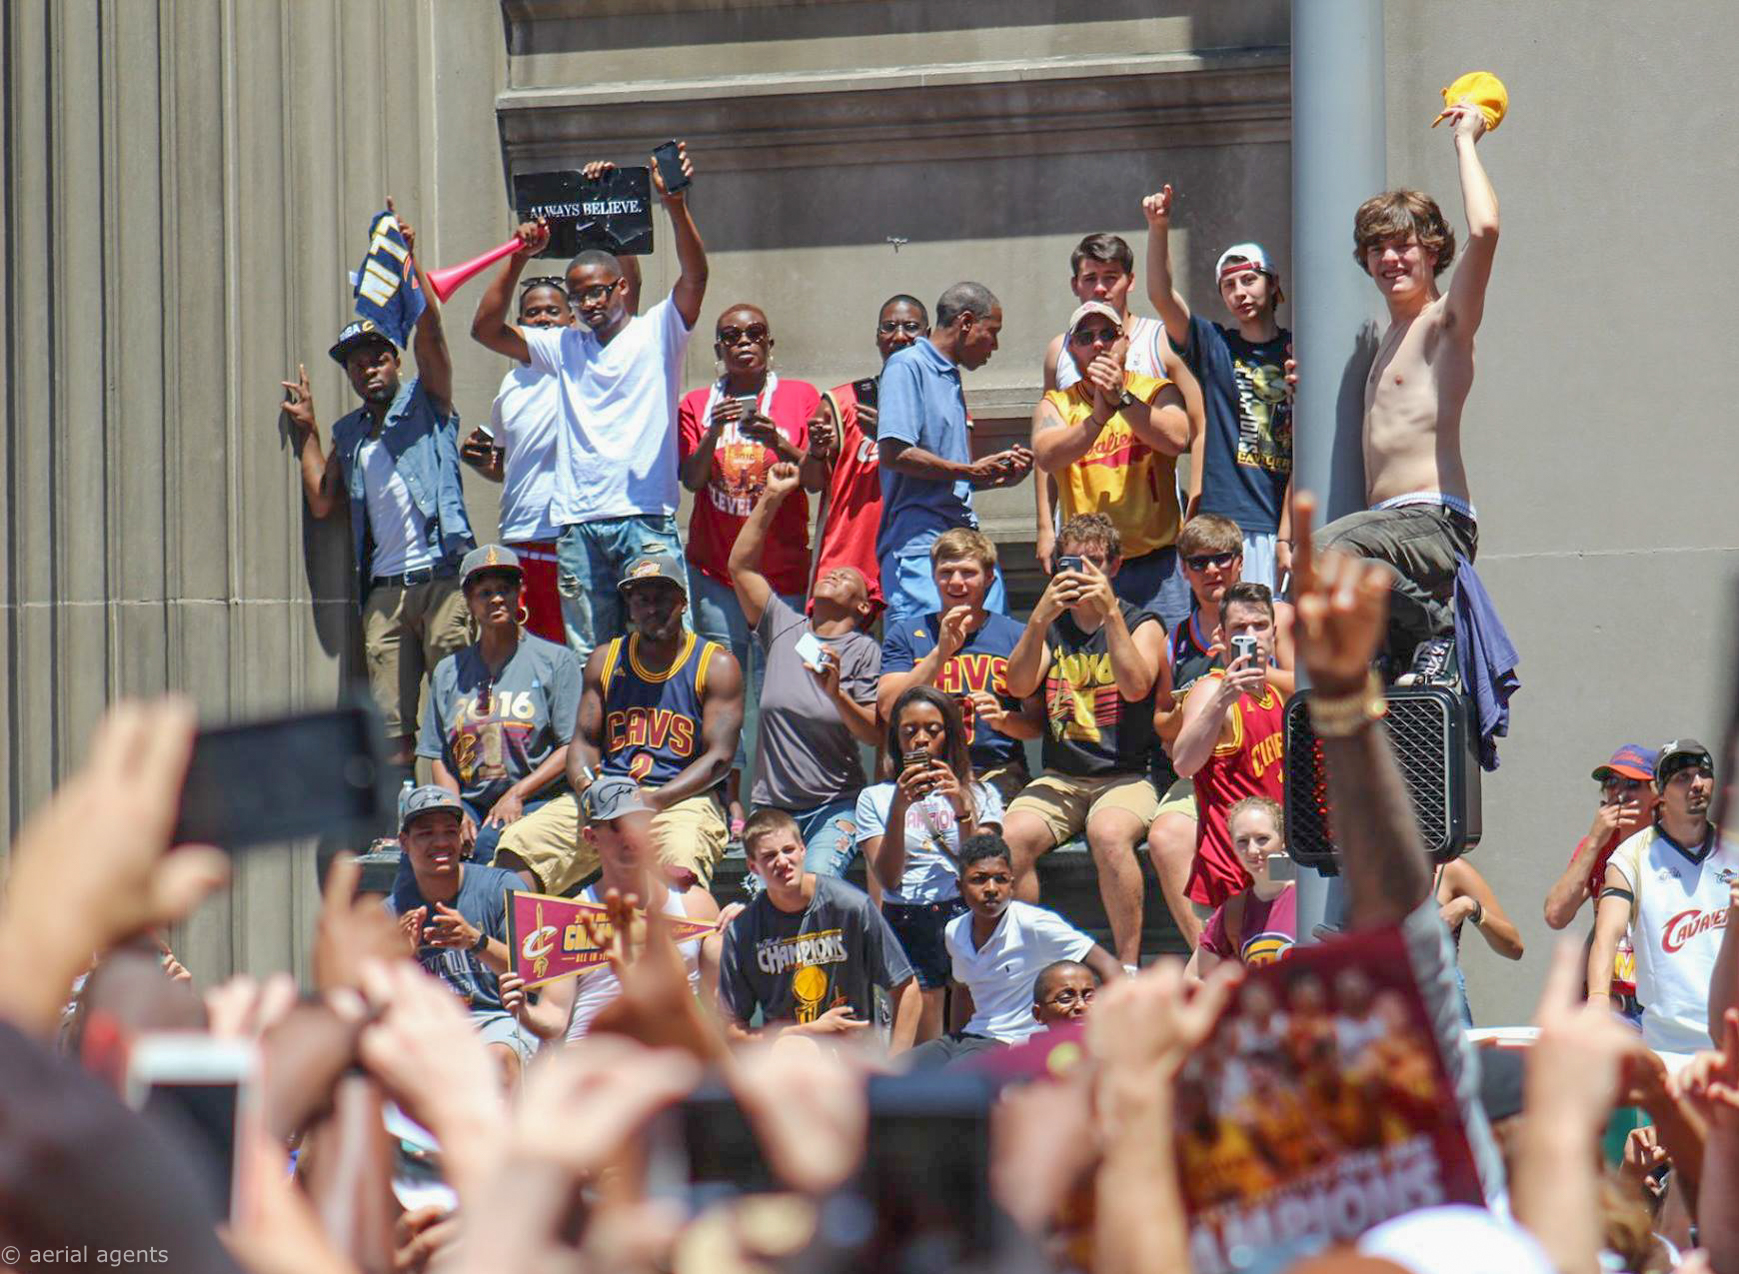 Epic celebration for Cavs fans. The Parade brought everyone together